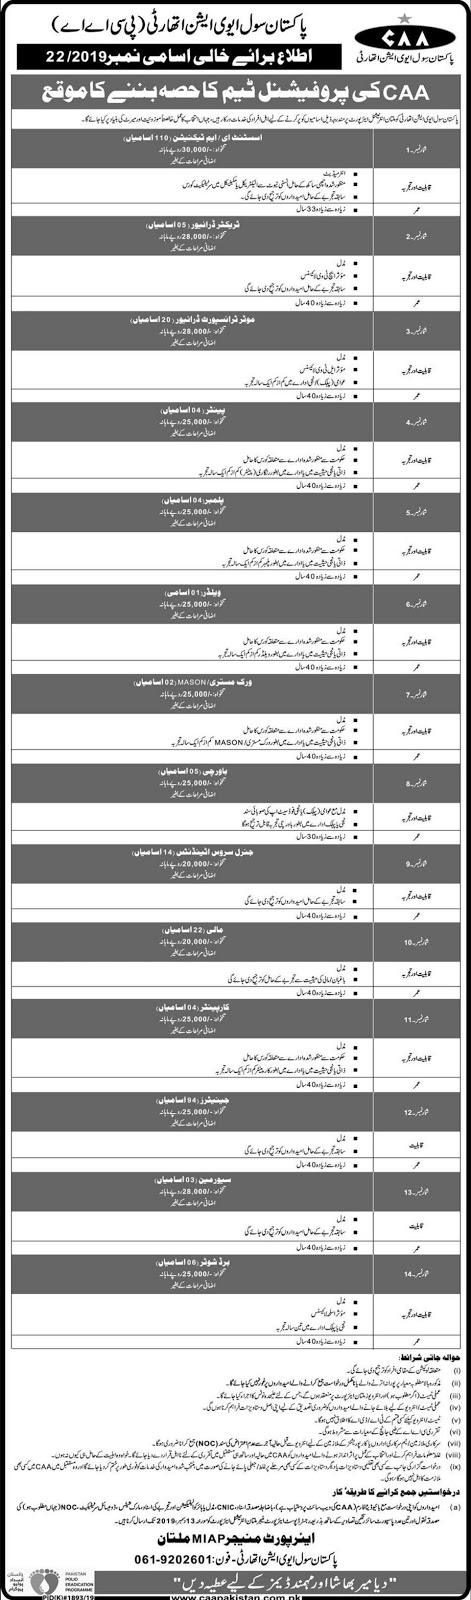 CAA New Jobs 2019 Pakistan Civil Aviation Authority Download Application Form